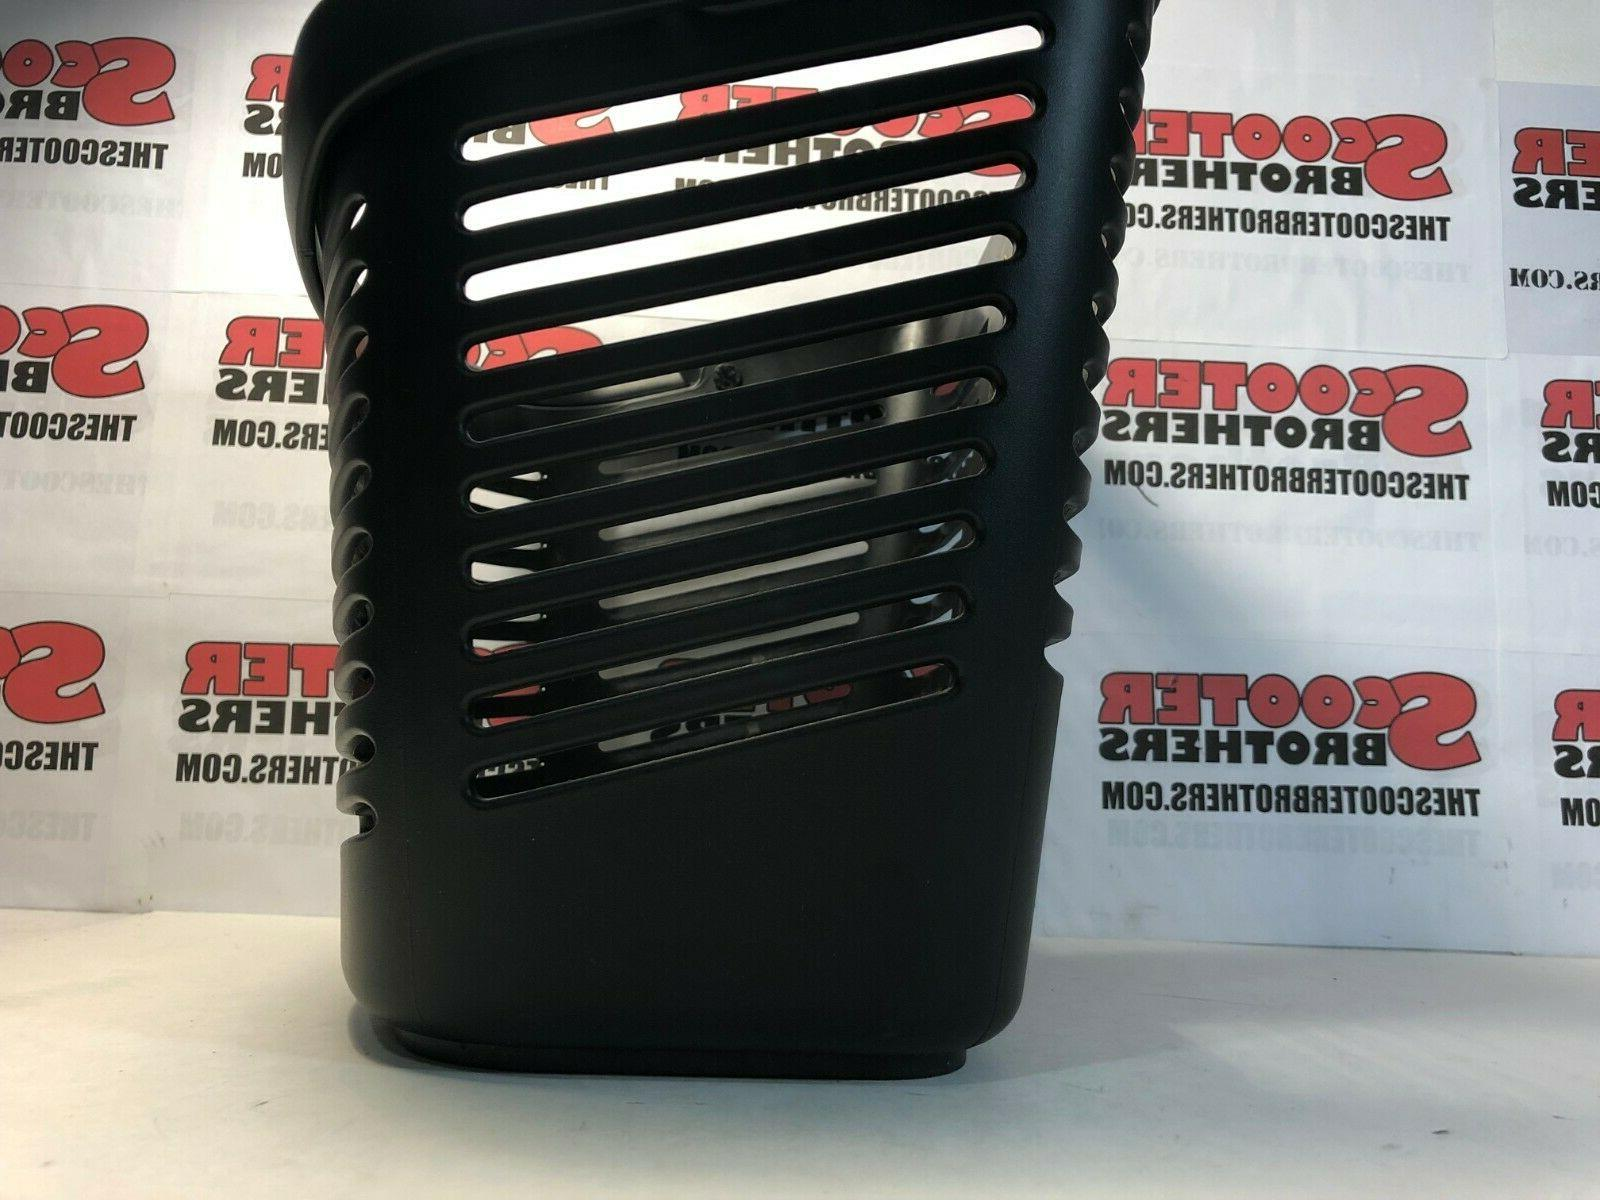 Pride Mobility Black FRONT BASKET for Victory, Sport, Pursuit Scooters